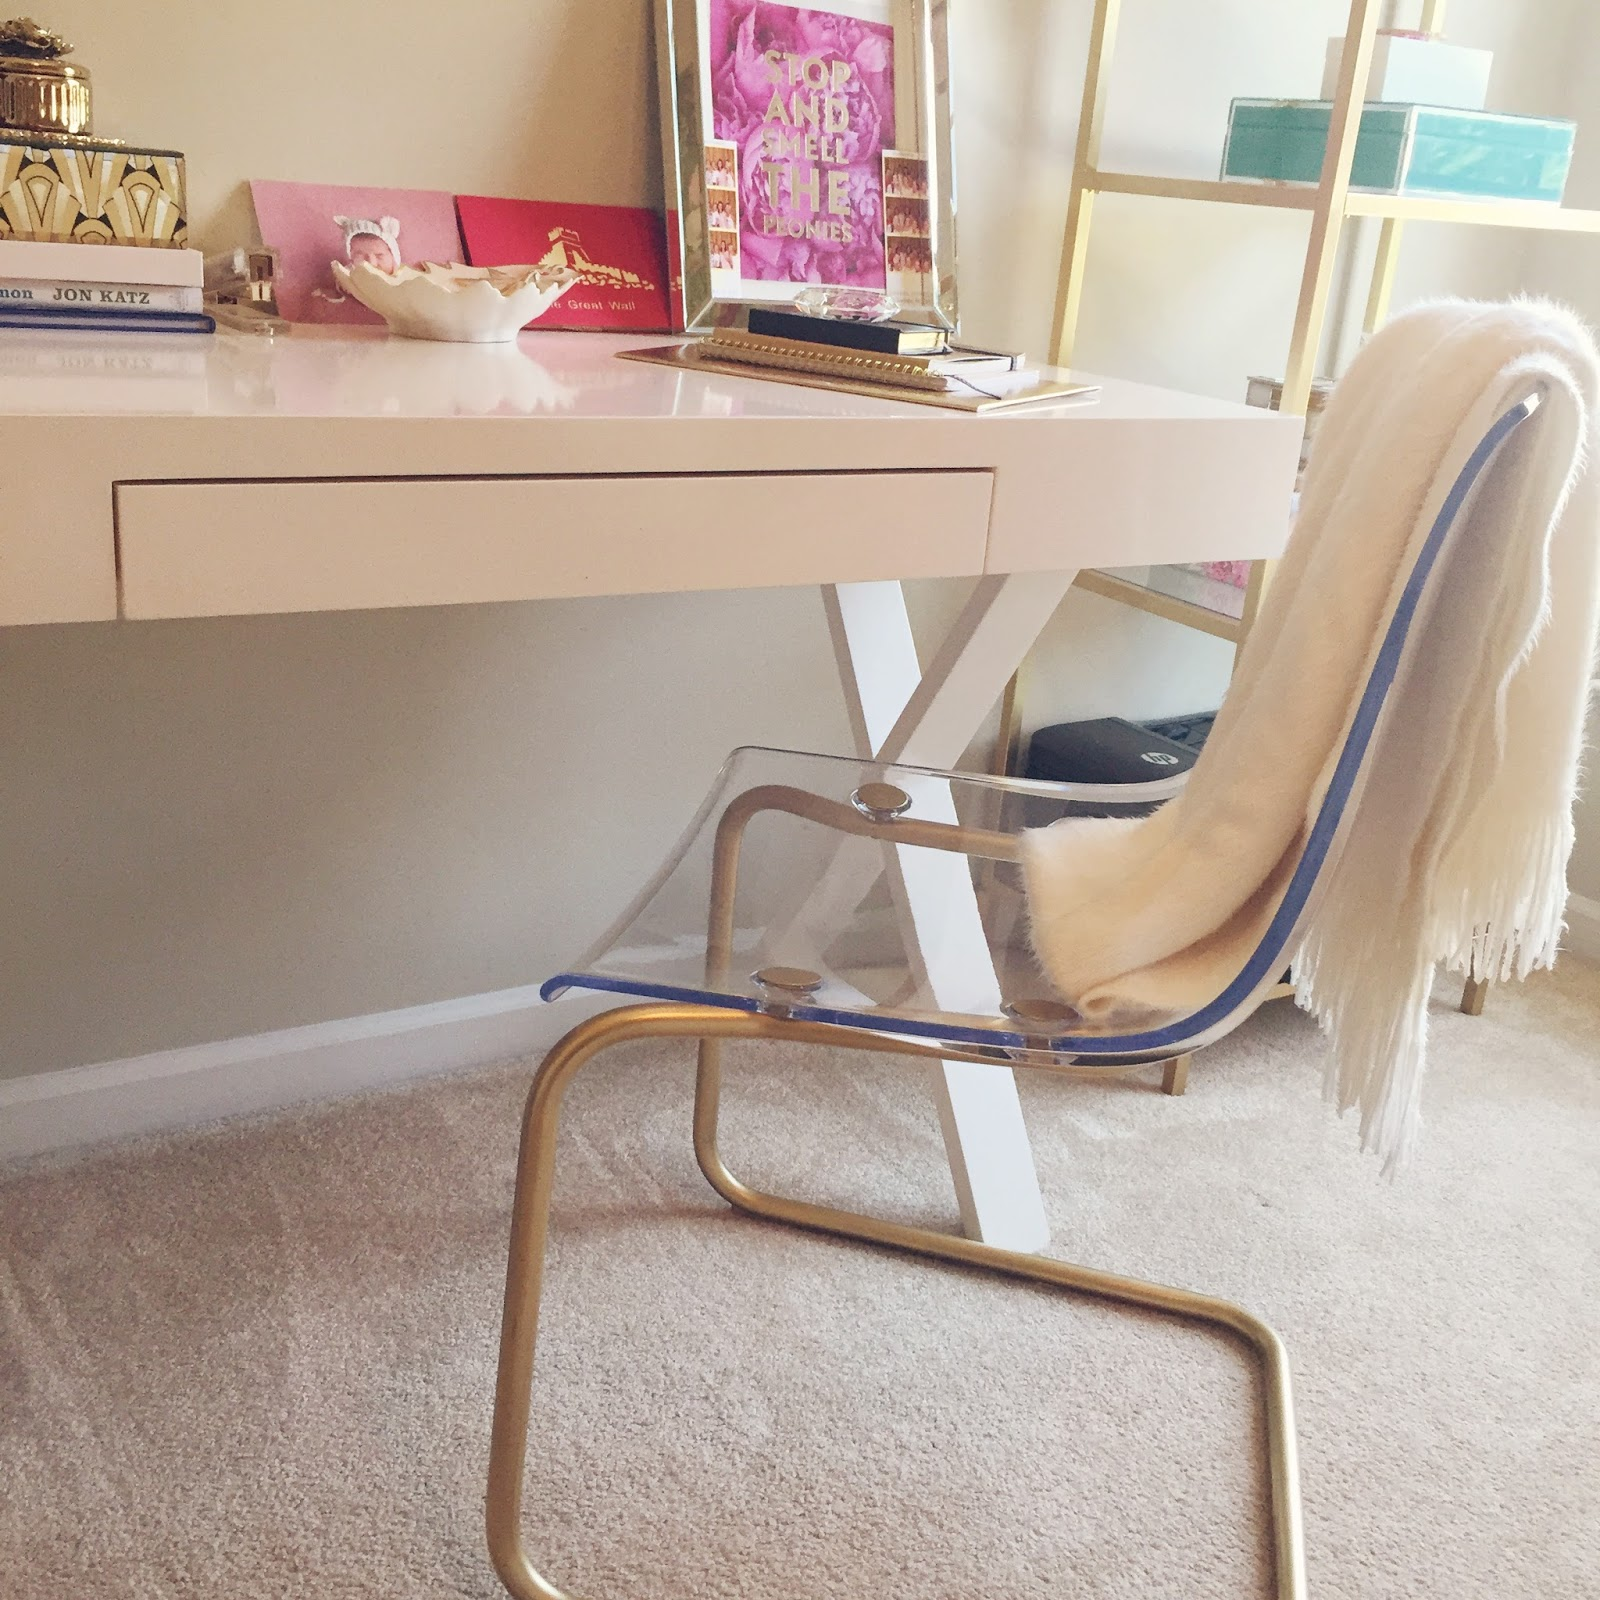 Ikea Tobias Chair Review Swivel Dimensions A For Anywhere The Iconic South Shore